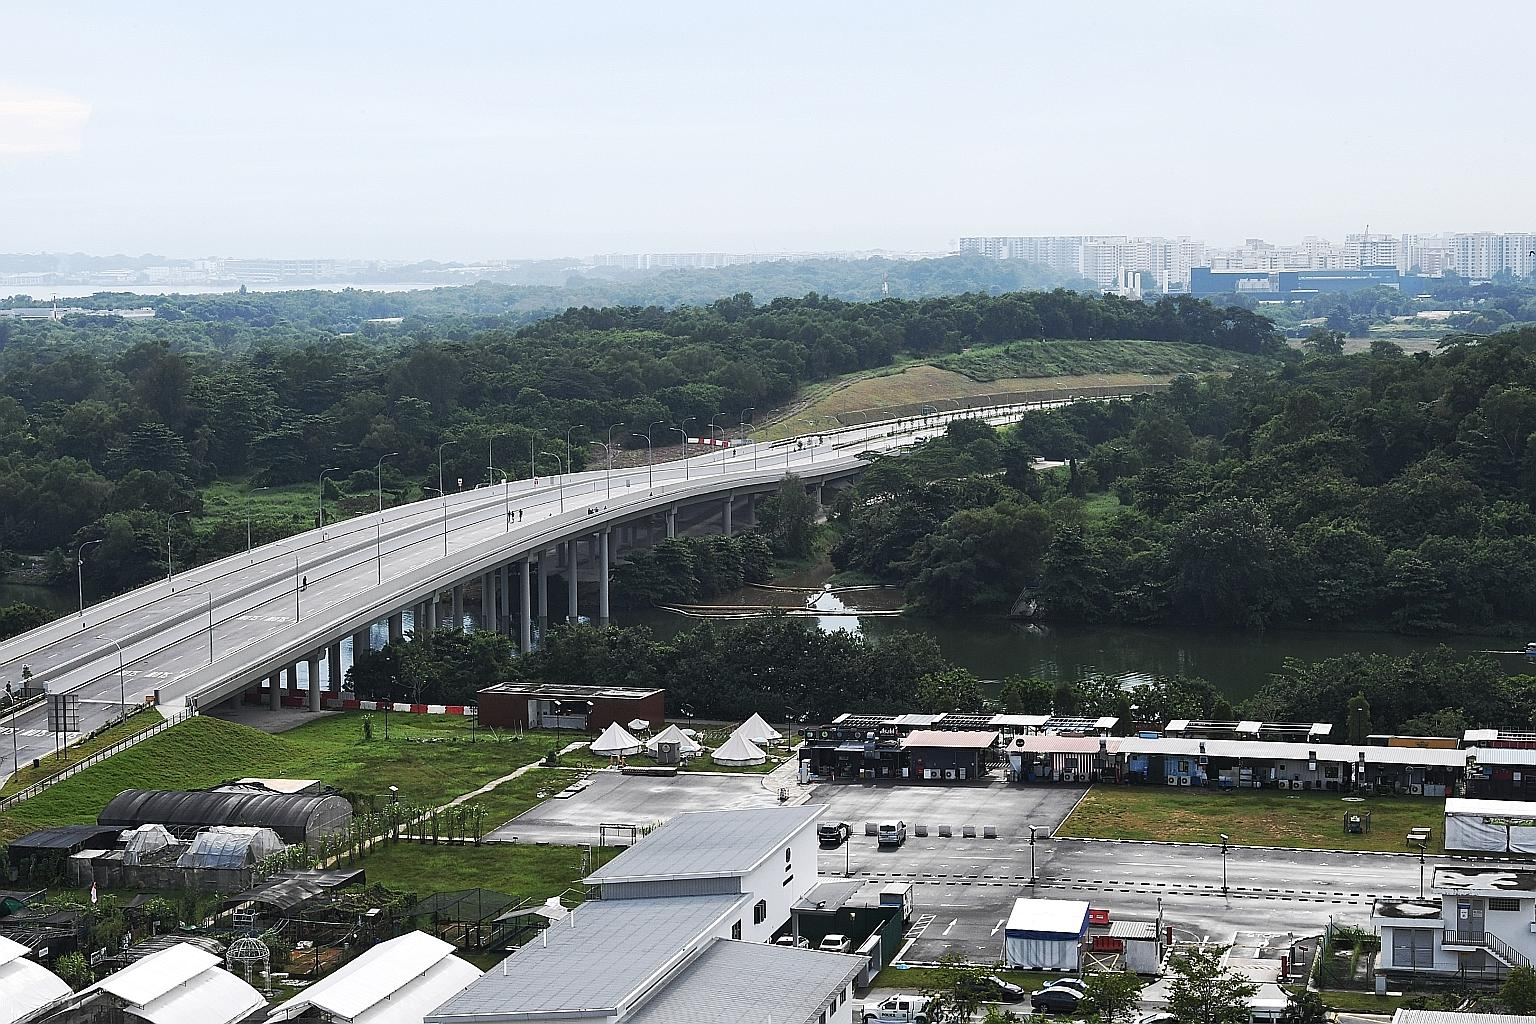 The new road connecting Punggol Central to the Kallang-Paya Lebar Expressway and the Tampines Expressway had originally been slated to open in the third quarter of next year.